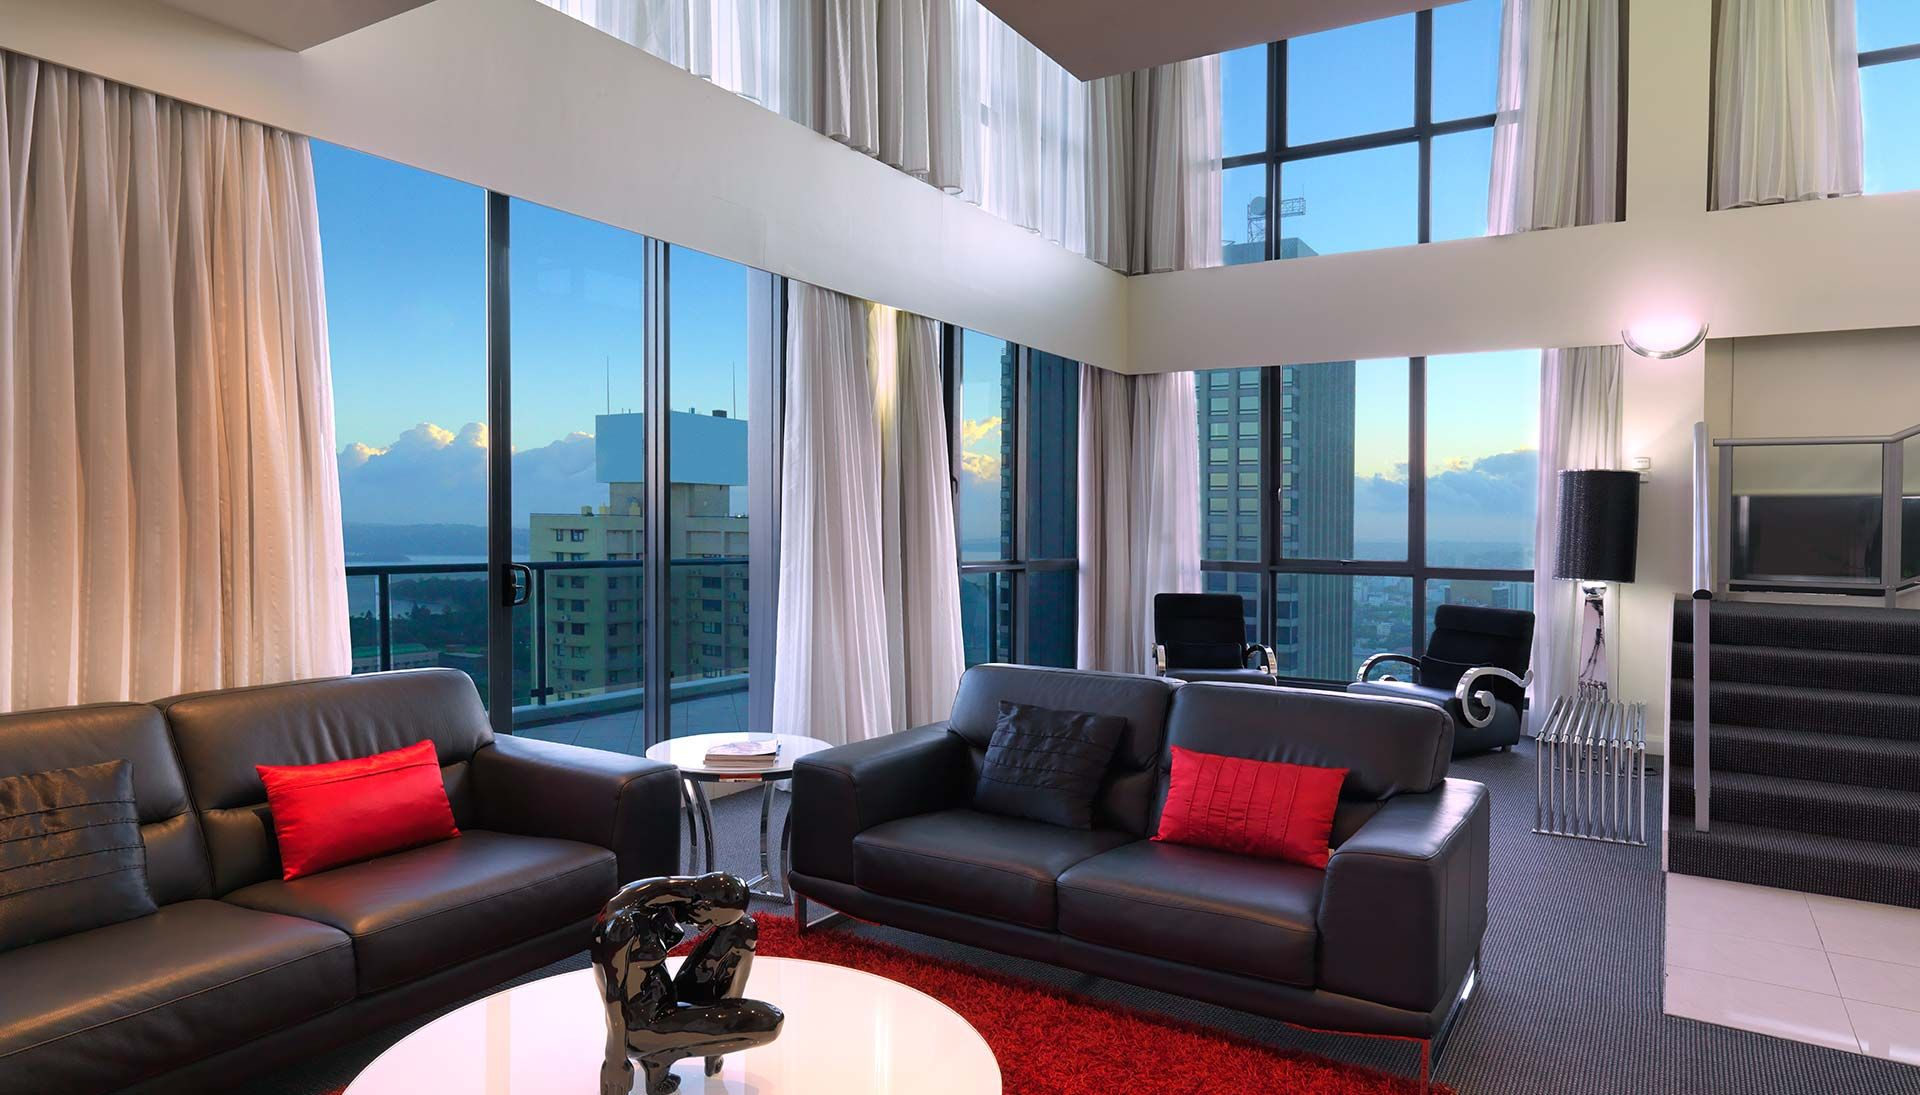 3 bedroom #penthouse apartment #meriton #luxury #hotel #sydney